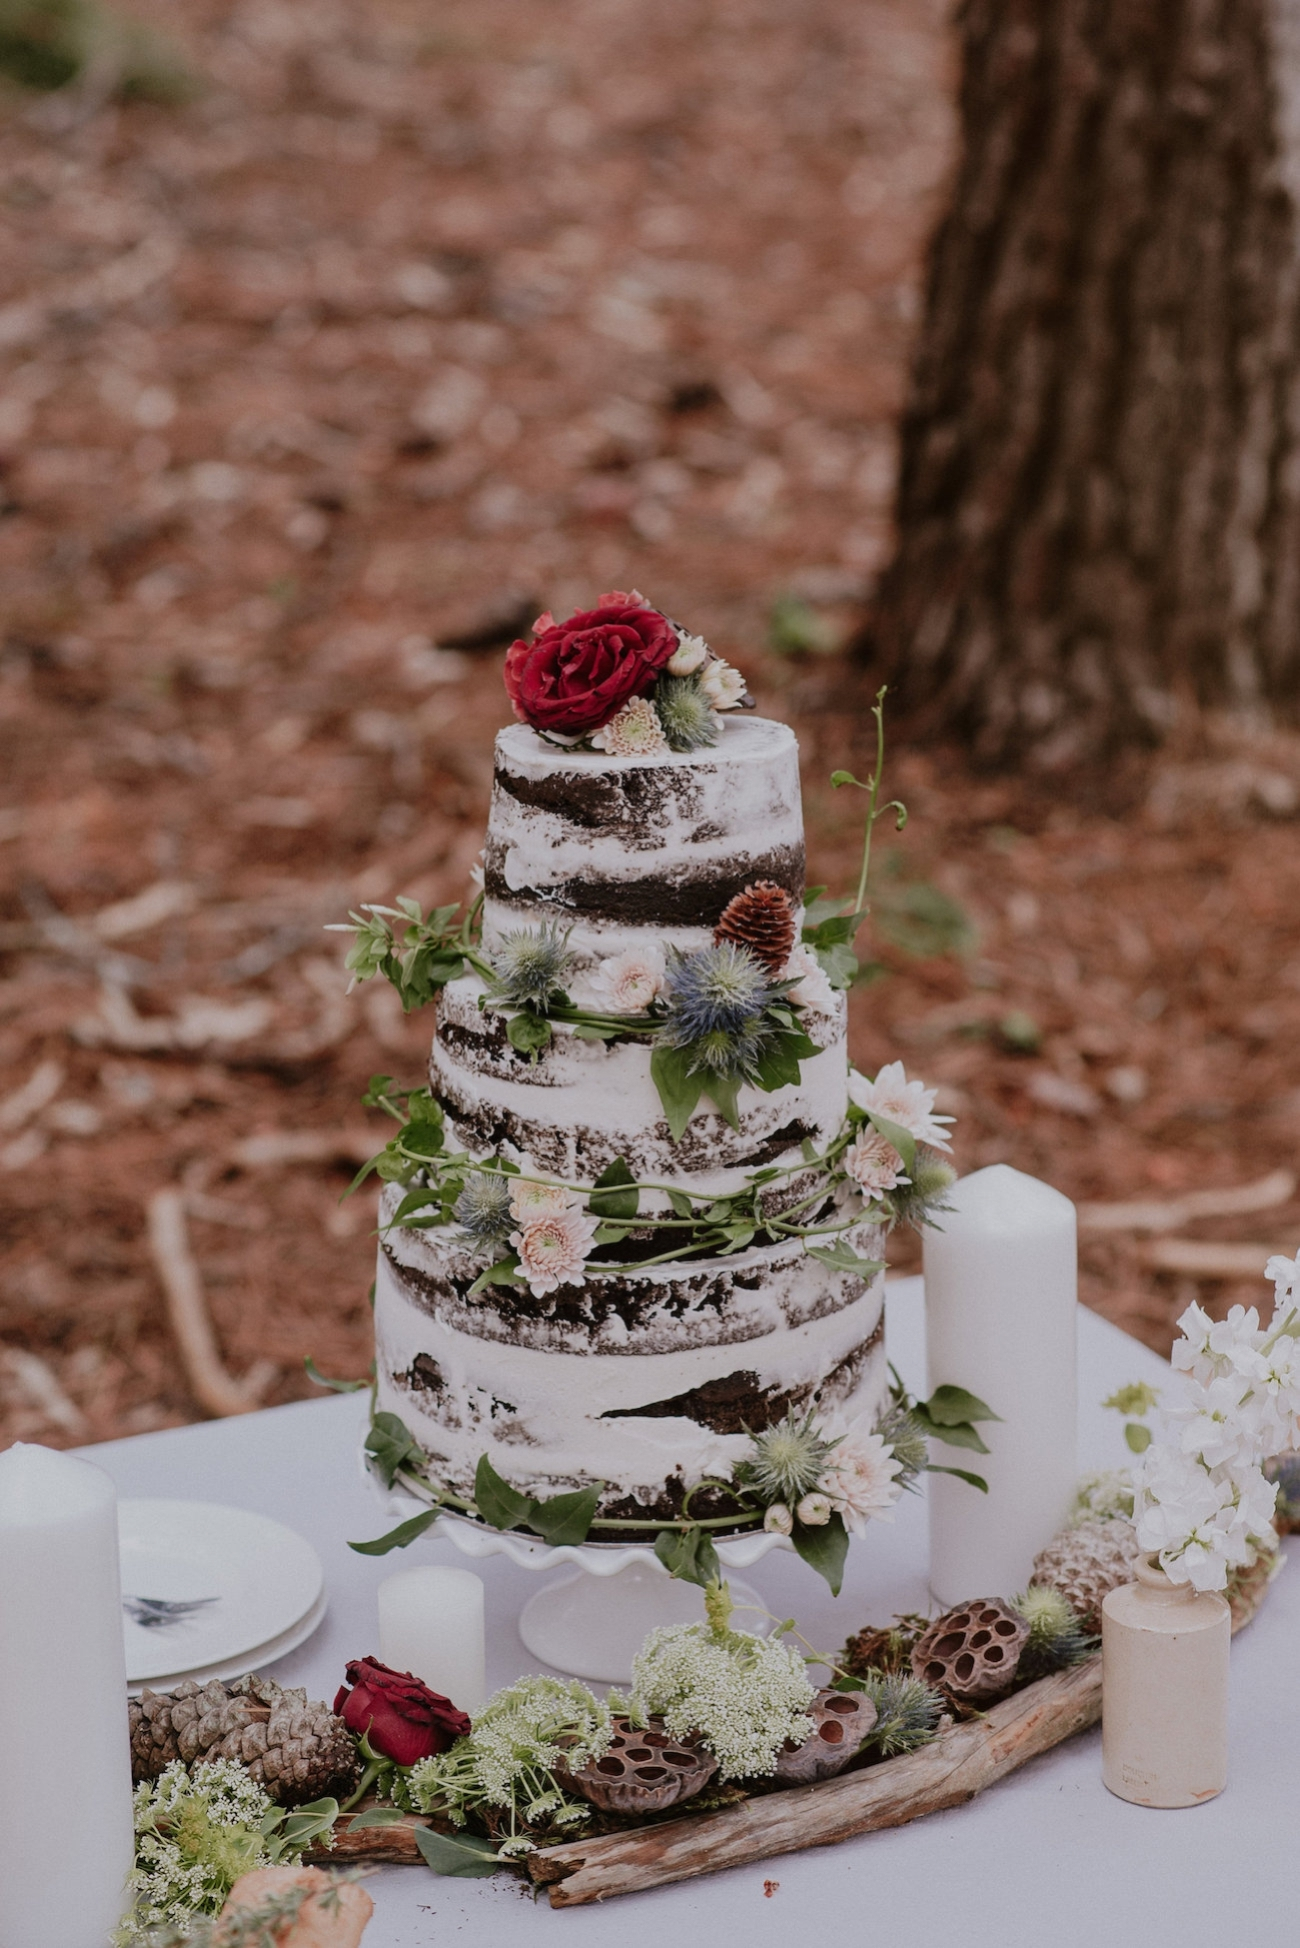 Chocolate Naked Cake | Credit: Lad & Lass Photography